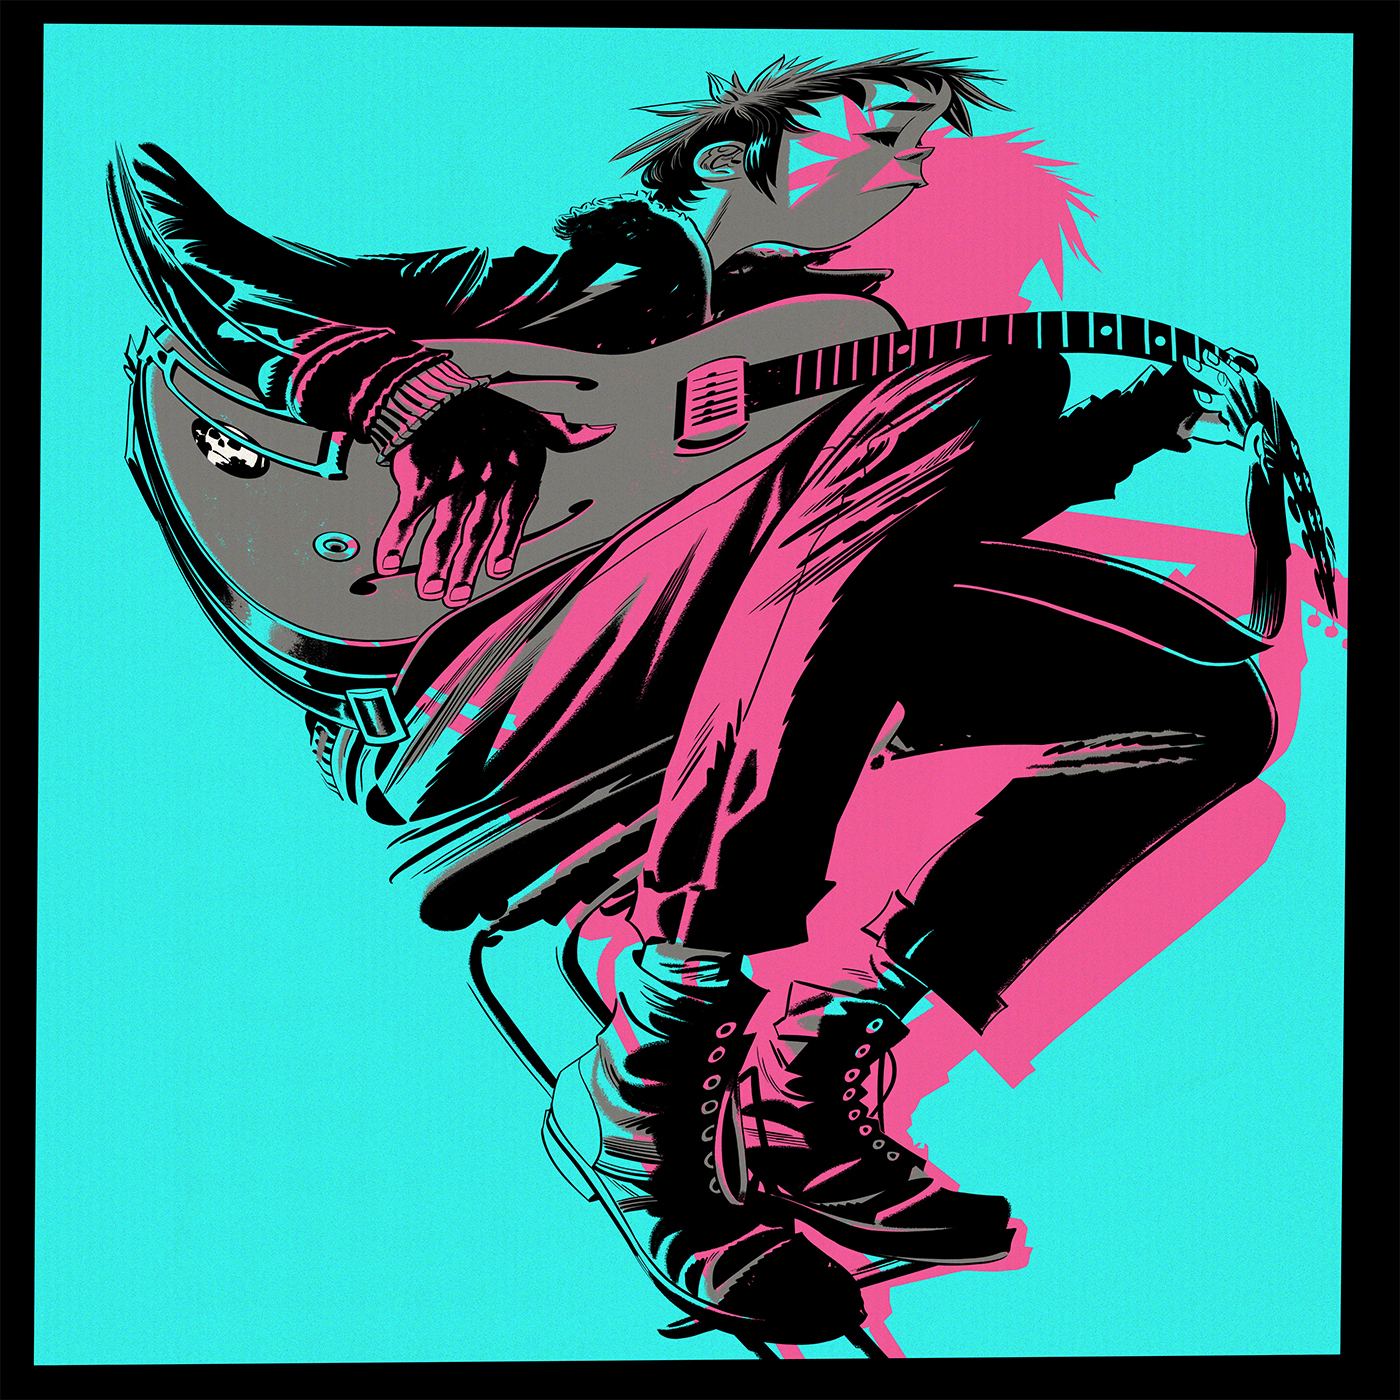 The Now Now by Gorillaz image